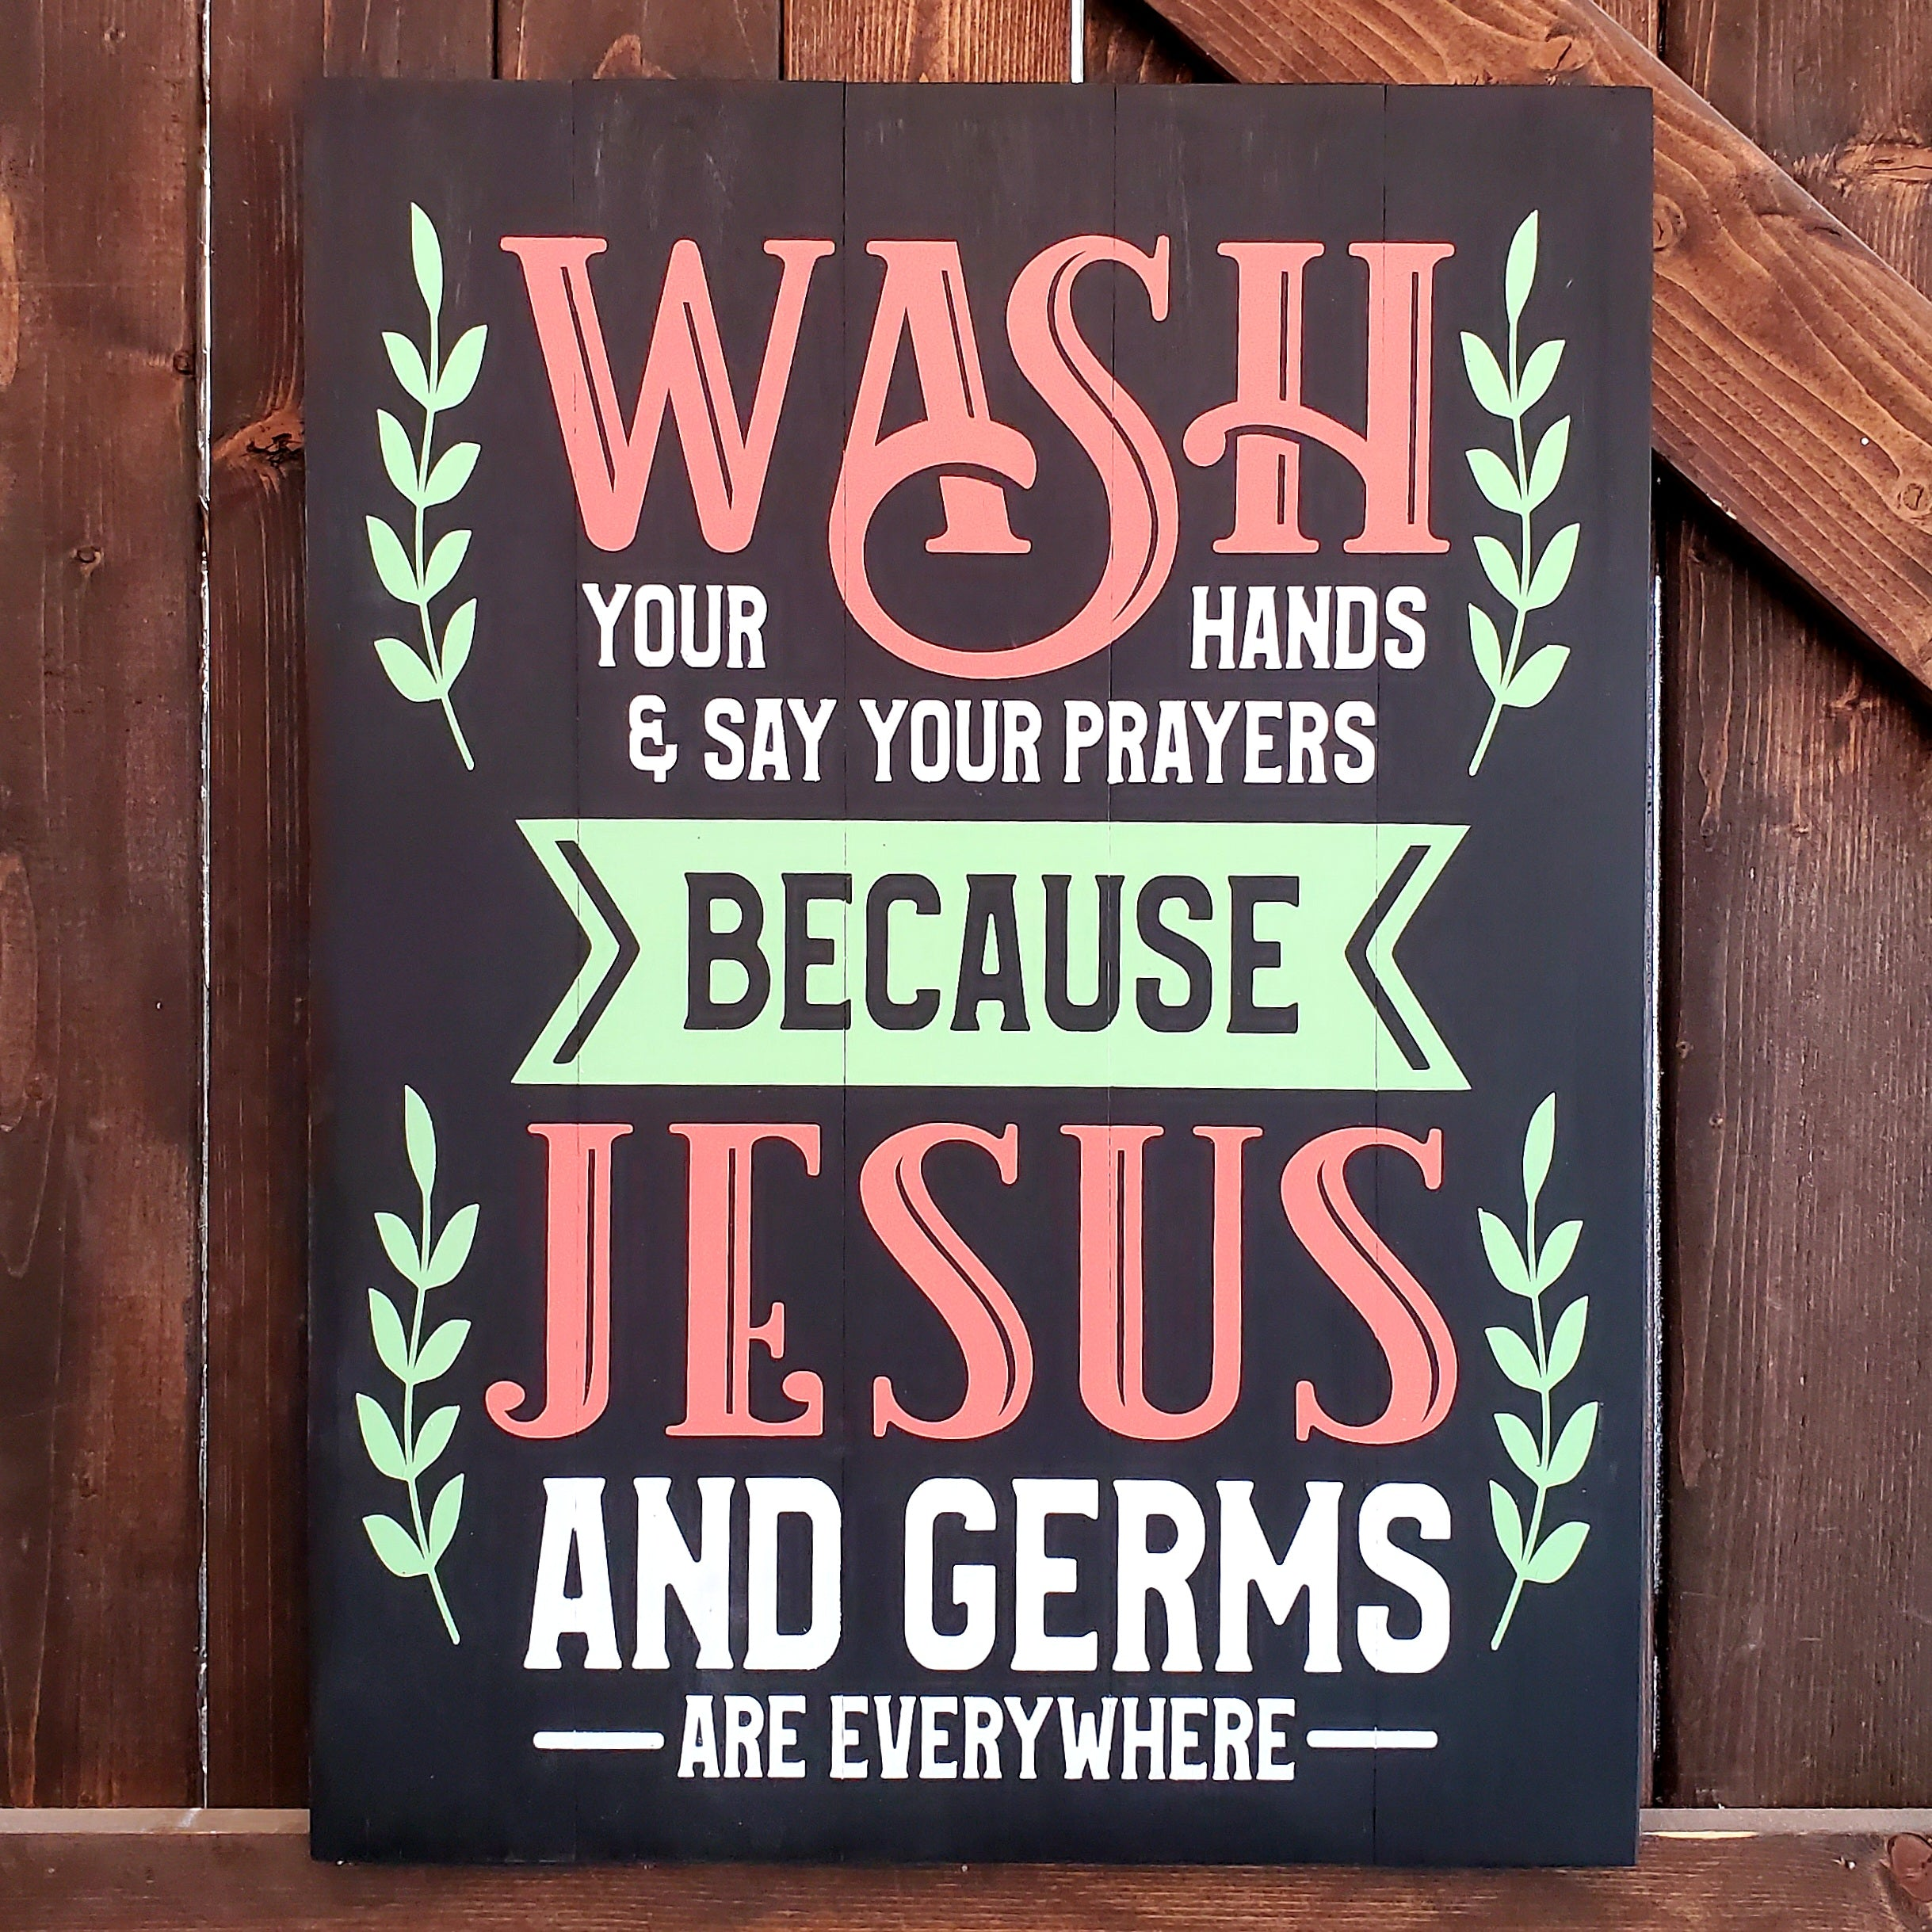 Wash Your Hands & Say Your Prayers Because Jesus and Germs Are Everywhere: SIGNATURE DESIGN